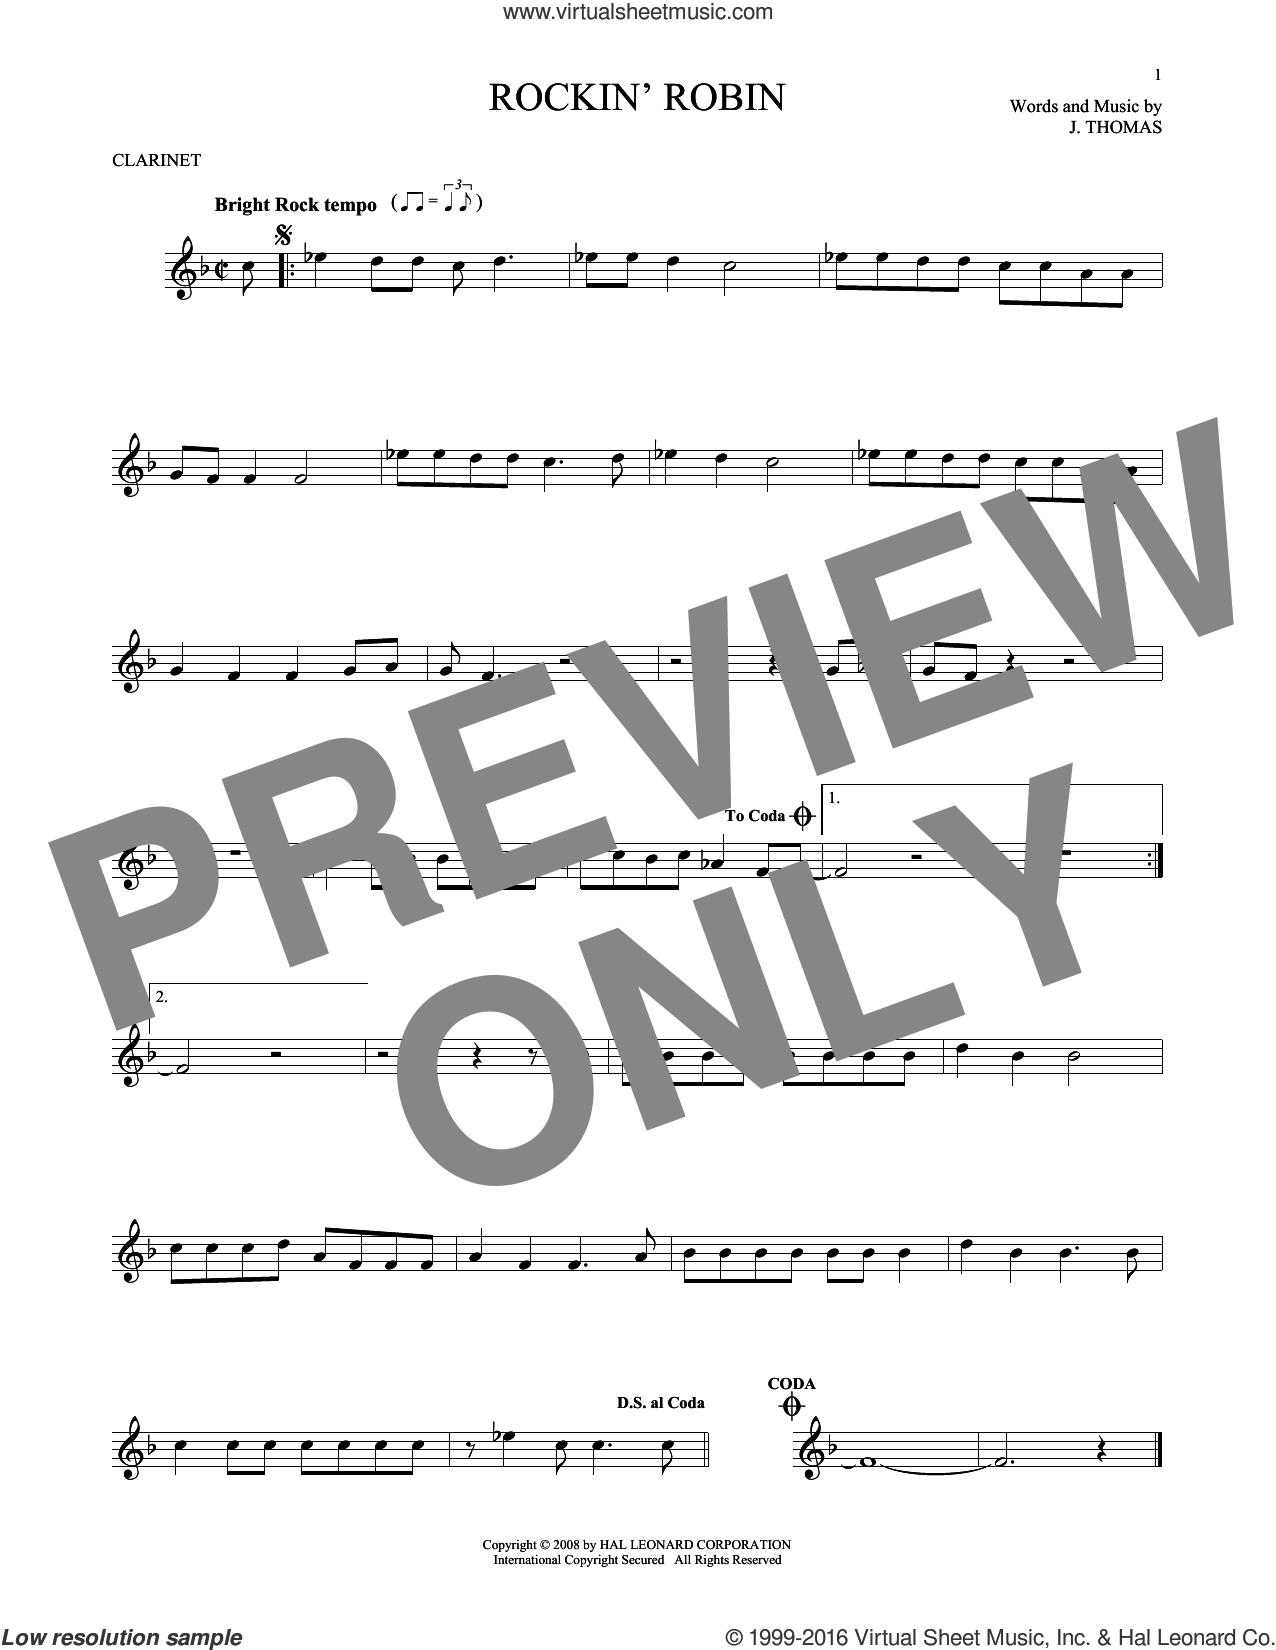 Rockin' Robin sheet music for clarinet solo by Thomas Jimmie, Bobby Day and Michael Jackson, intermediate